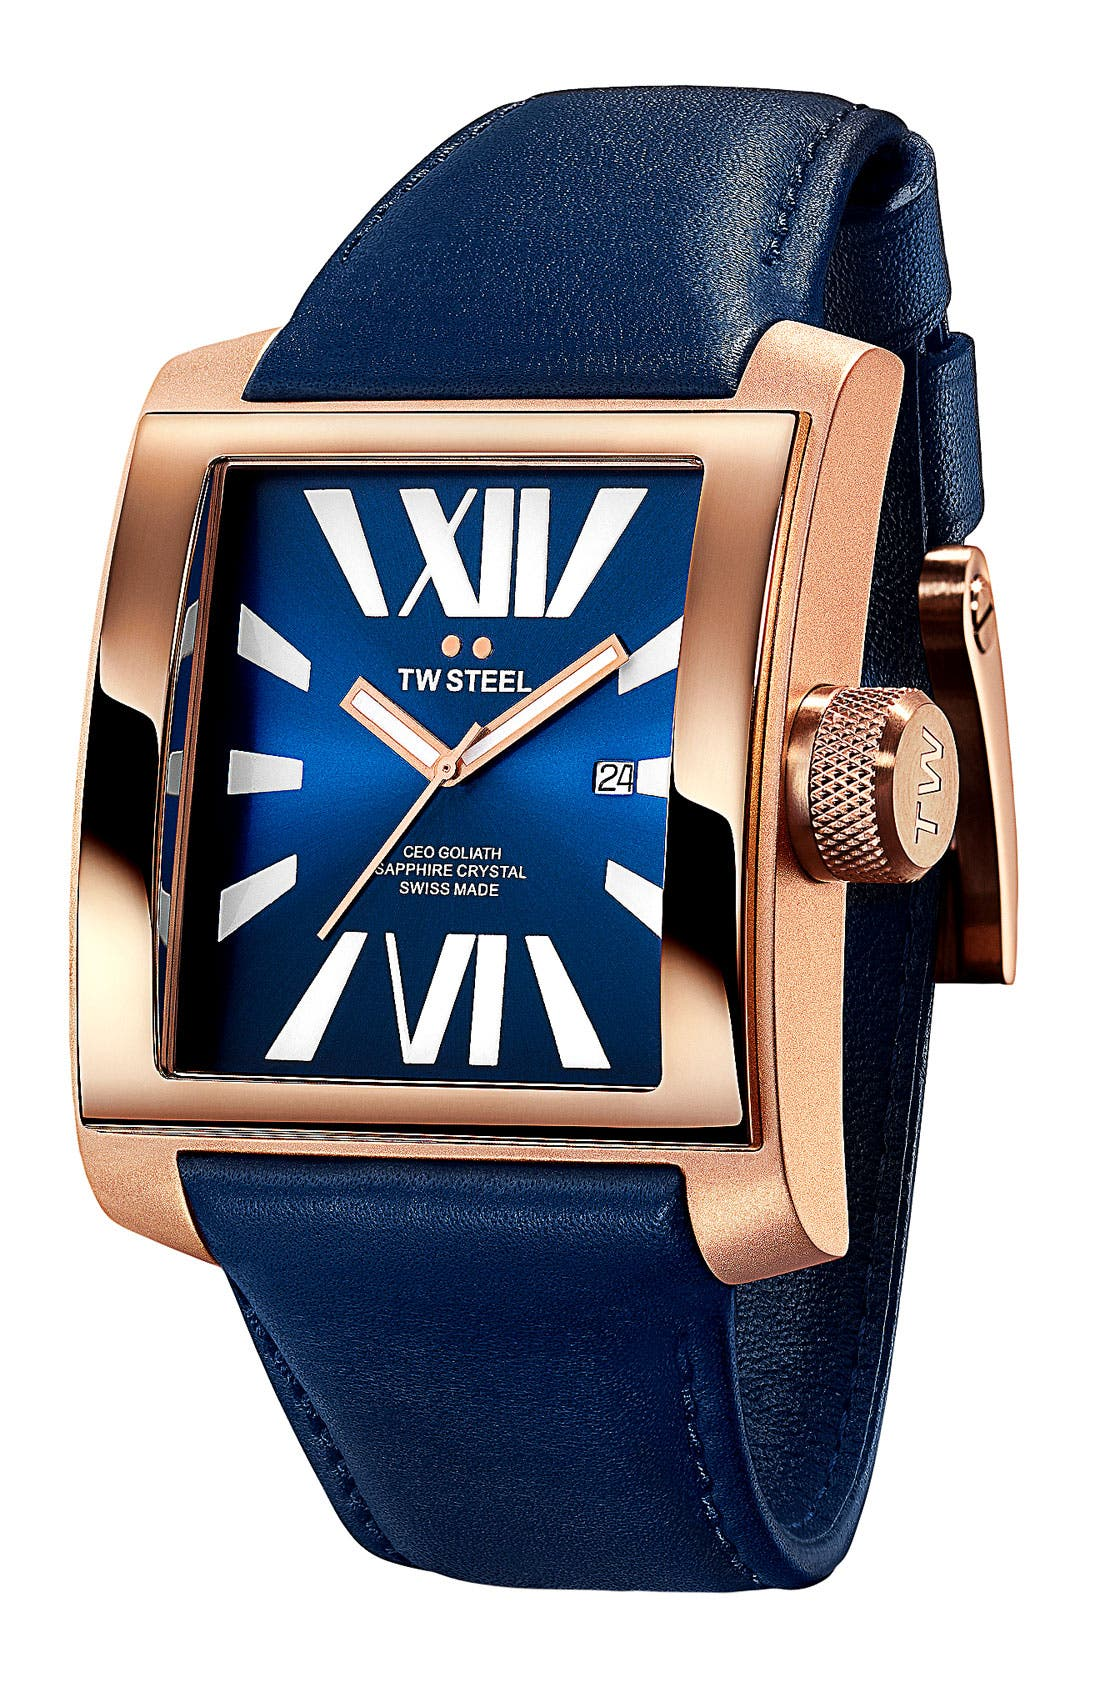 Main Image - TW Steel 'CEO Goliath' Rose Gold Watch